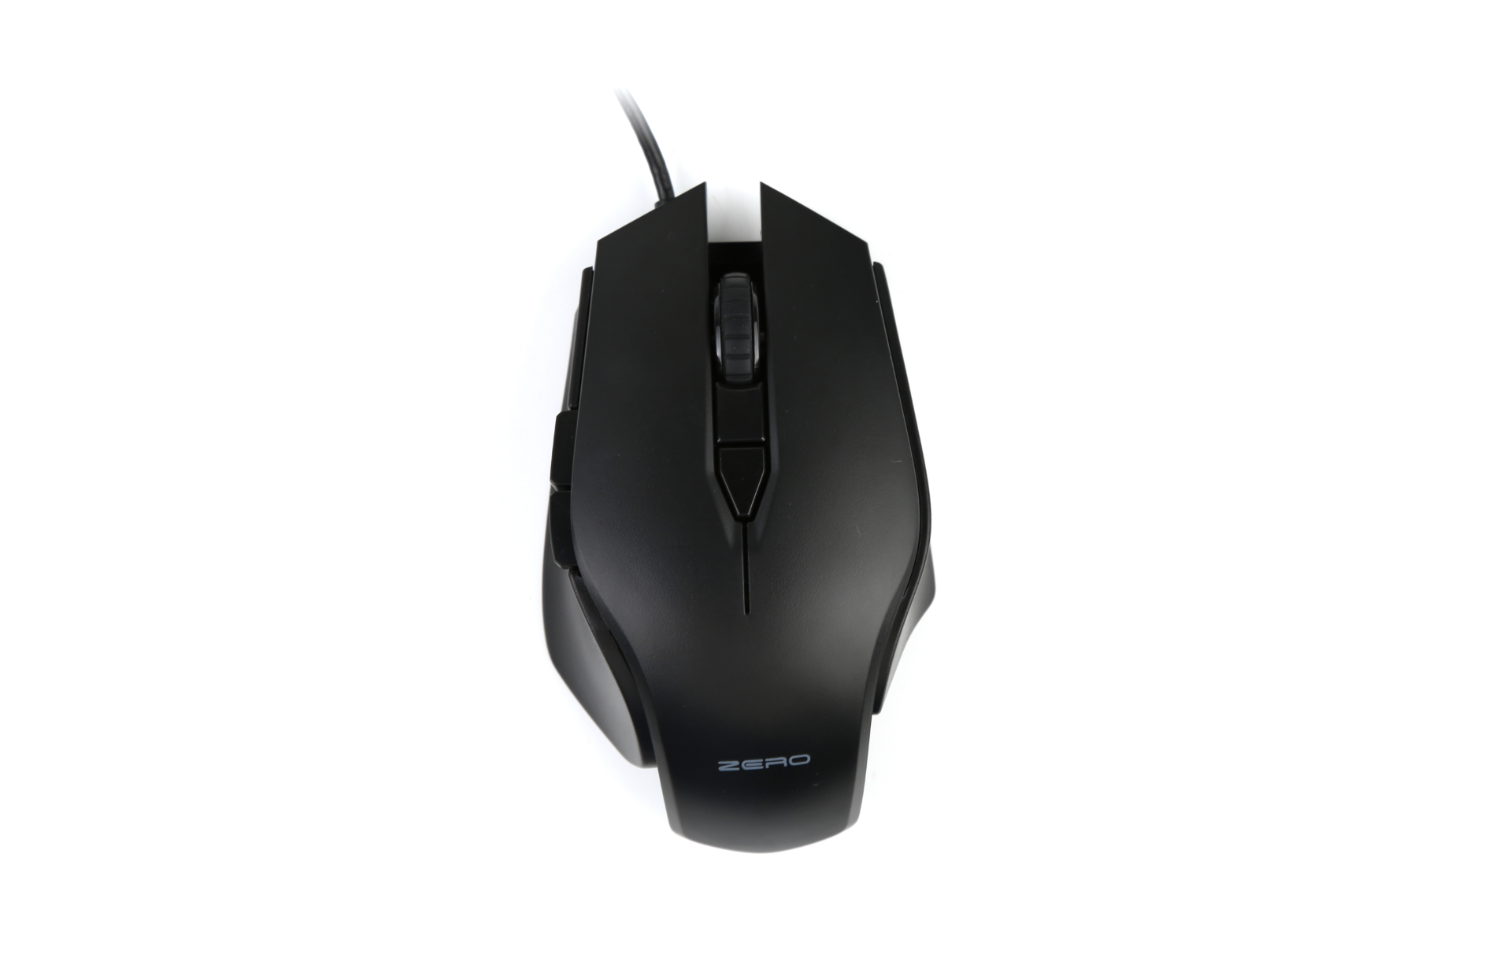 Metoo Wireless keyboard and mouse928